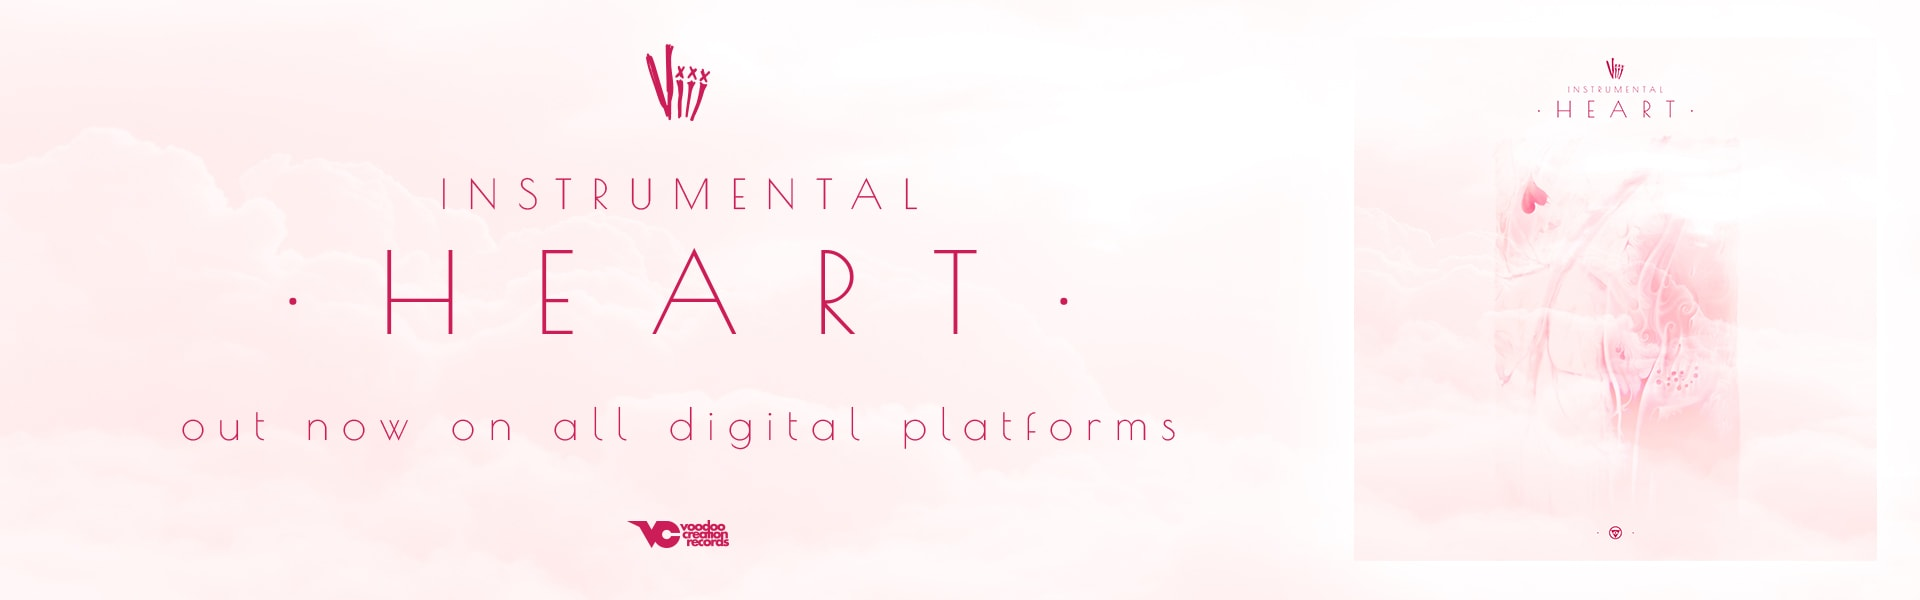 'INSTRUMENTAL HEART' released